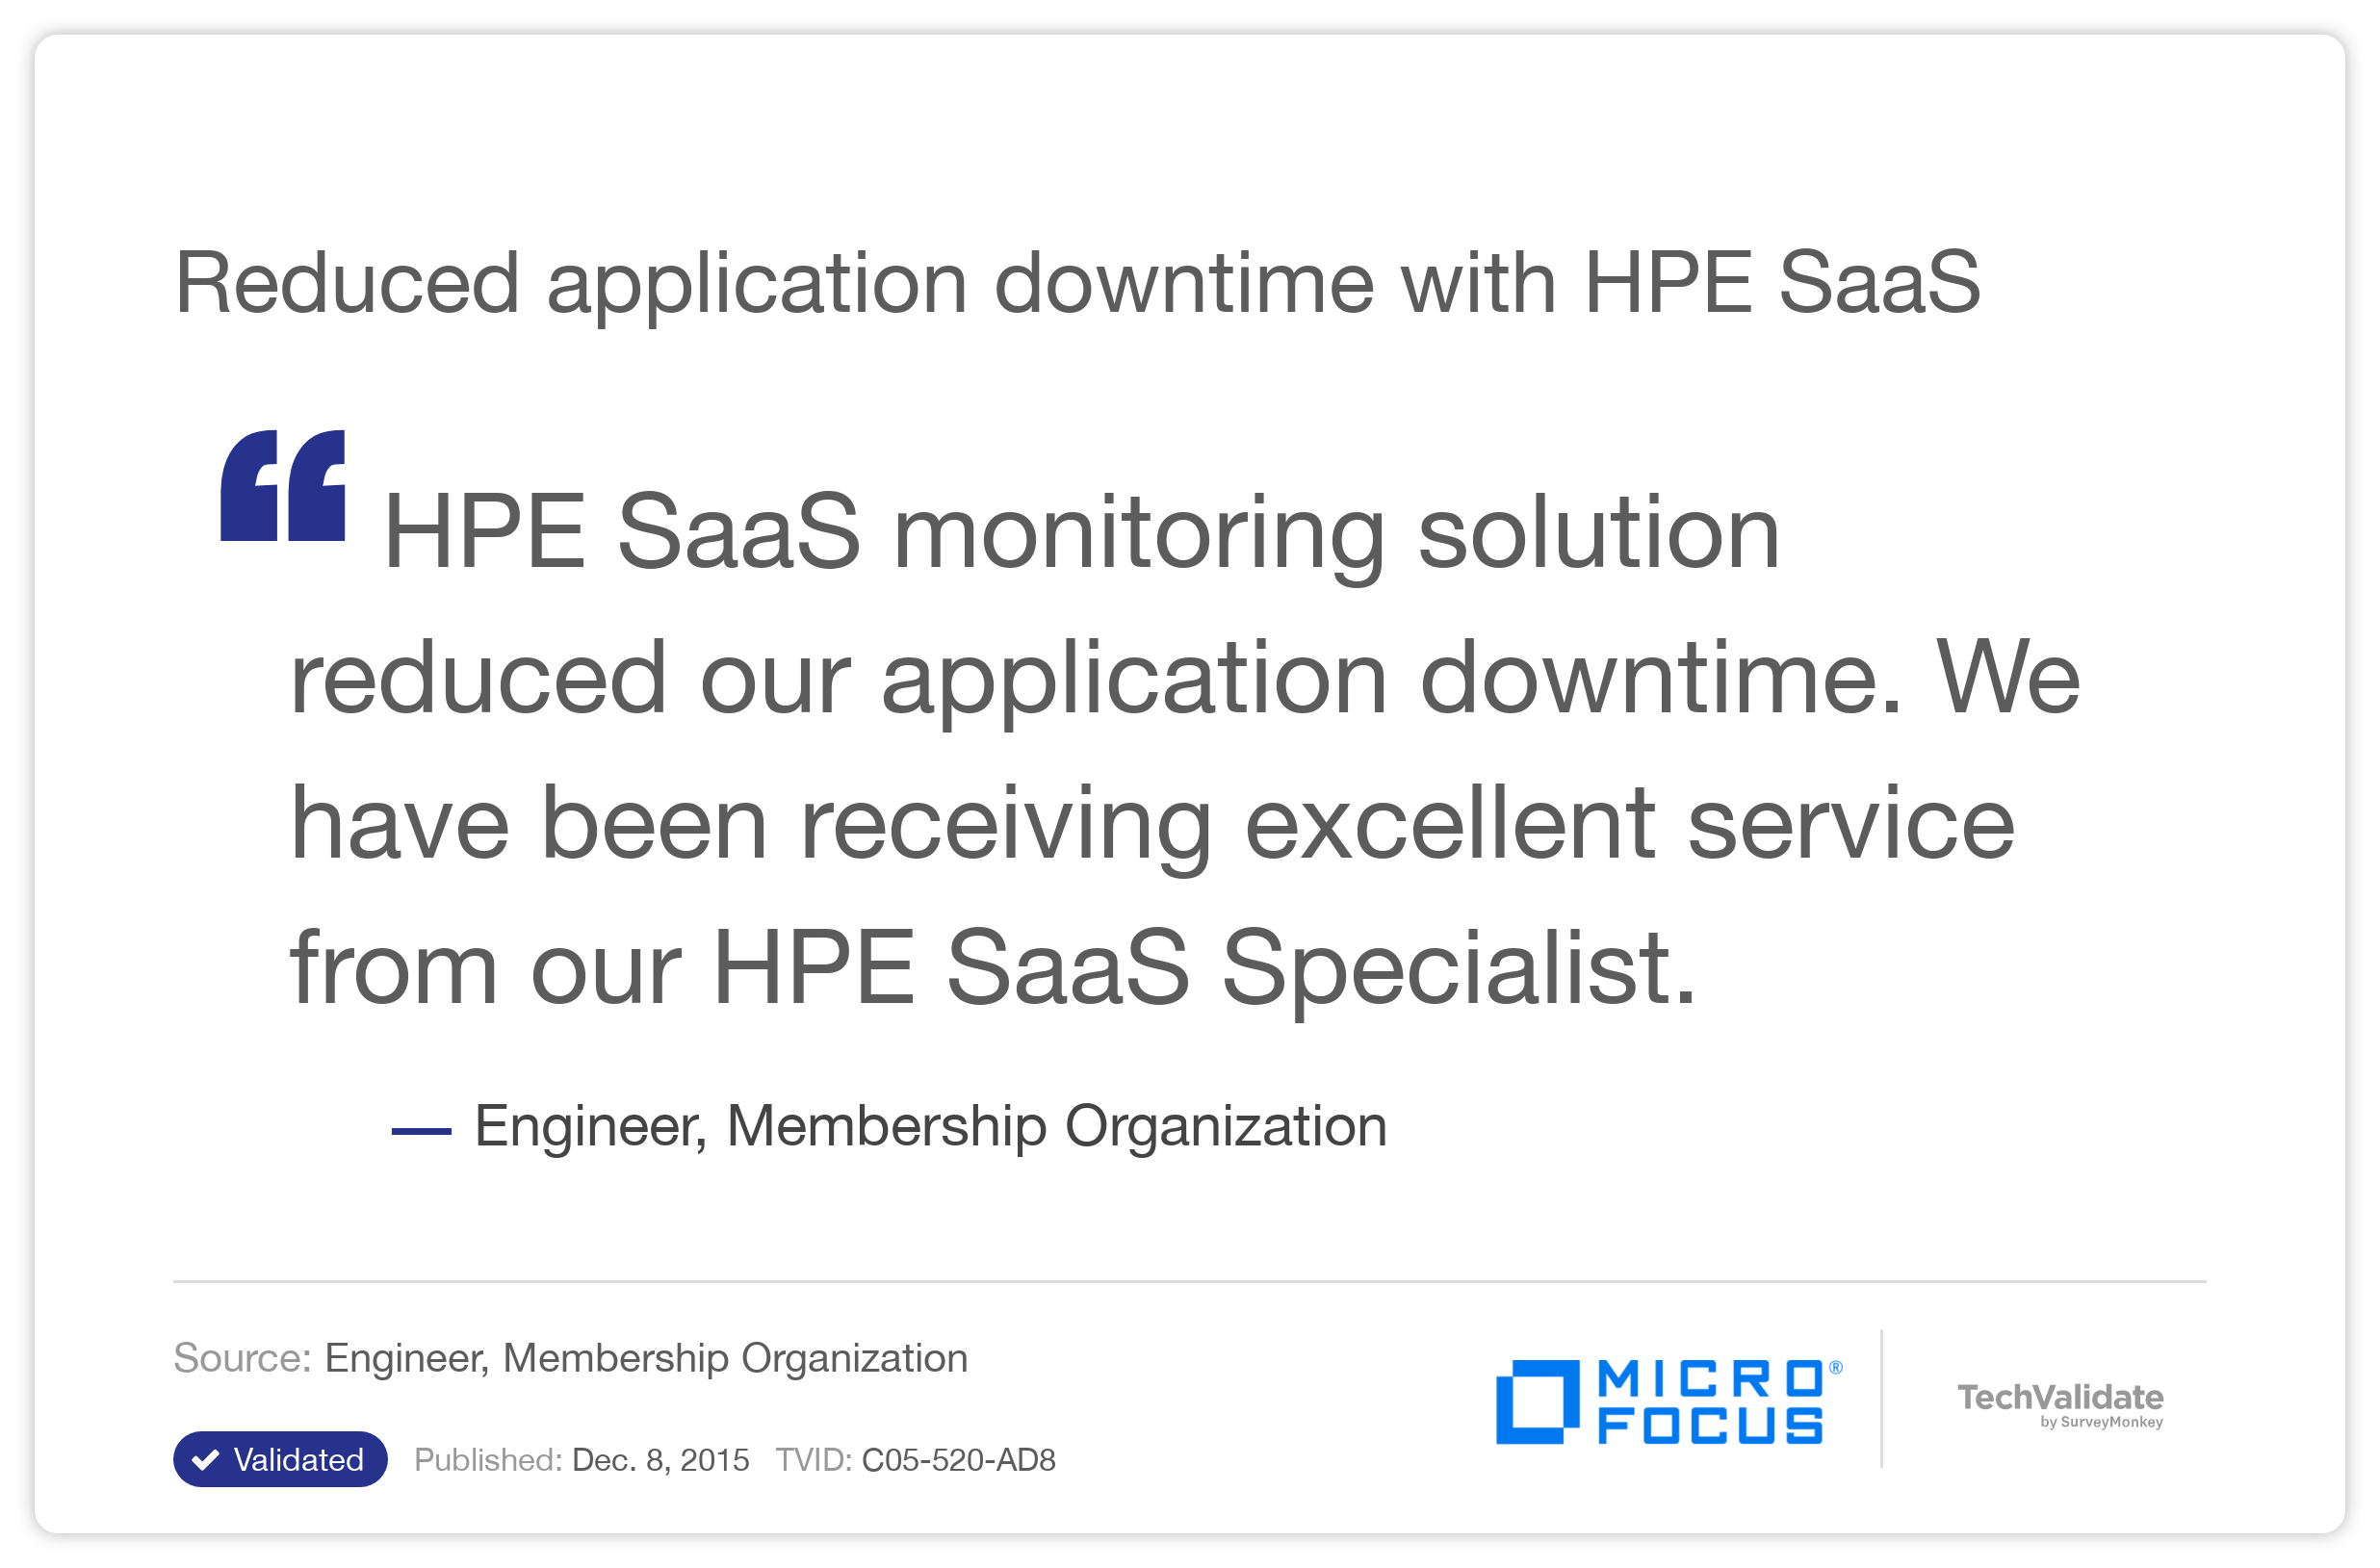 Reduced application downtime with HPE SaaS